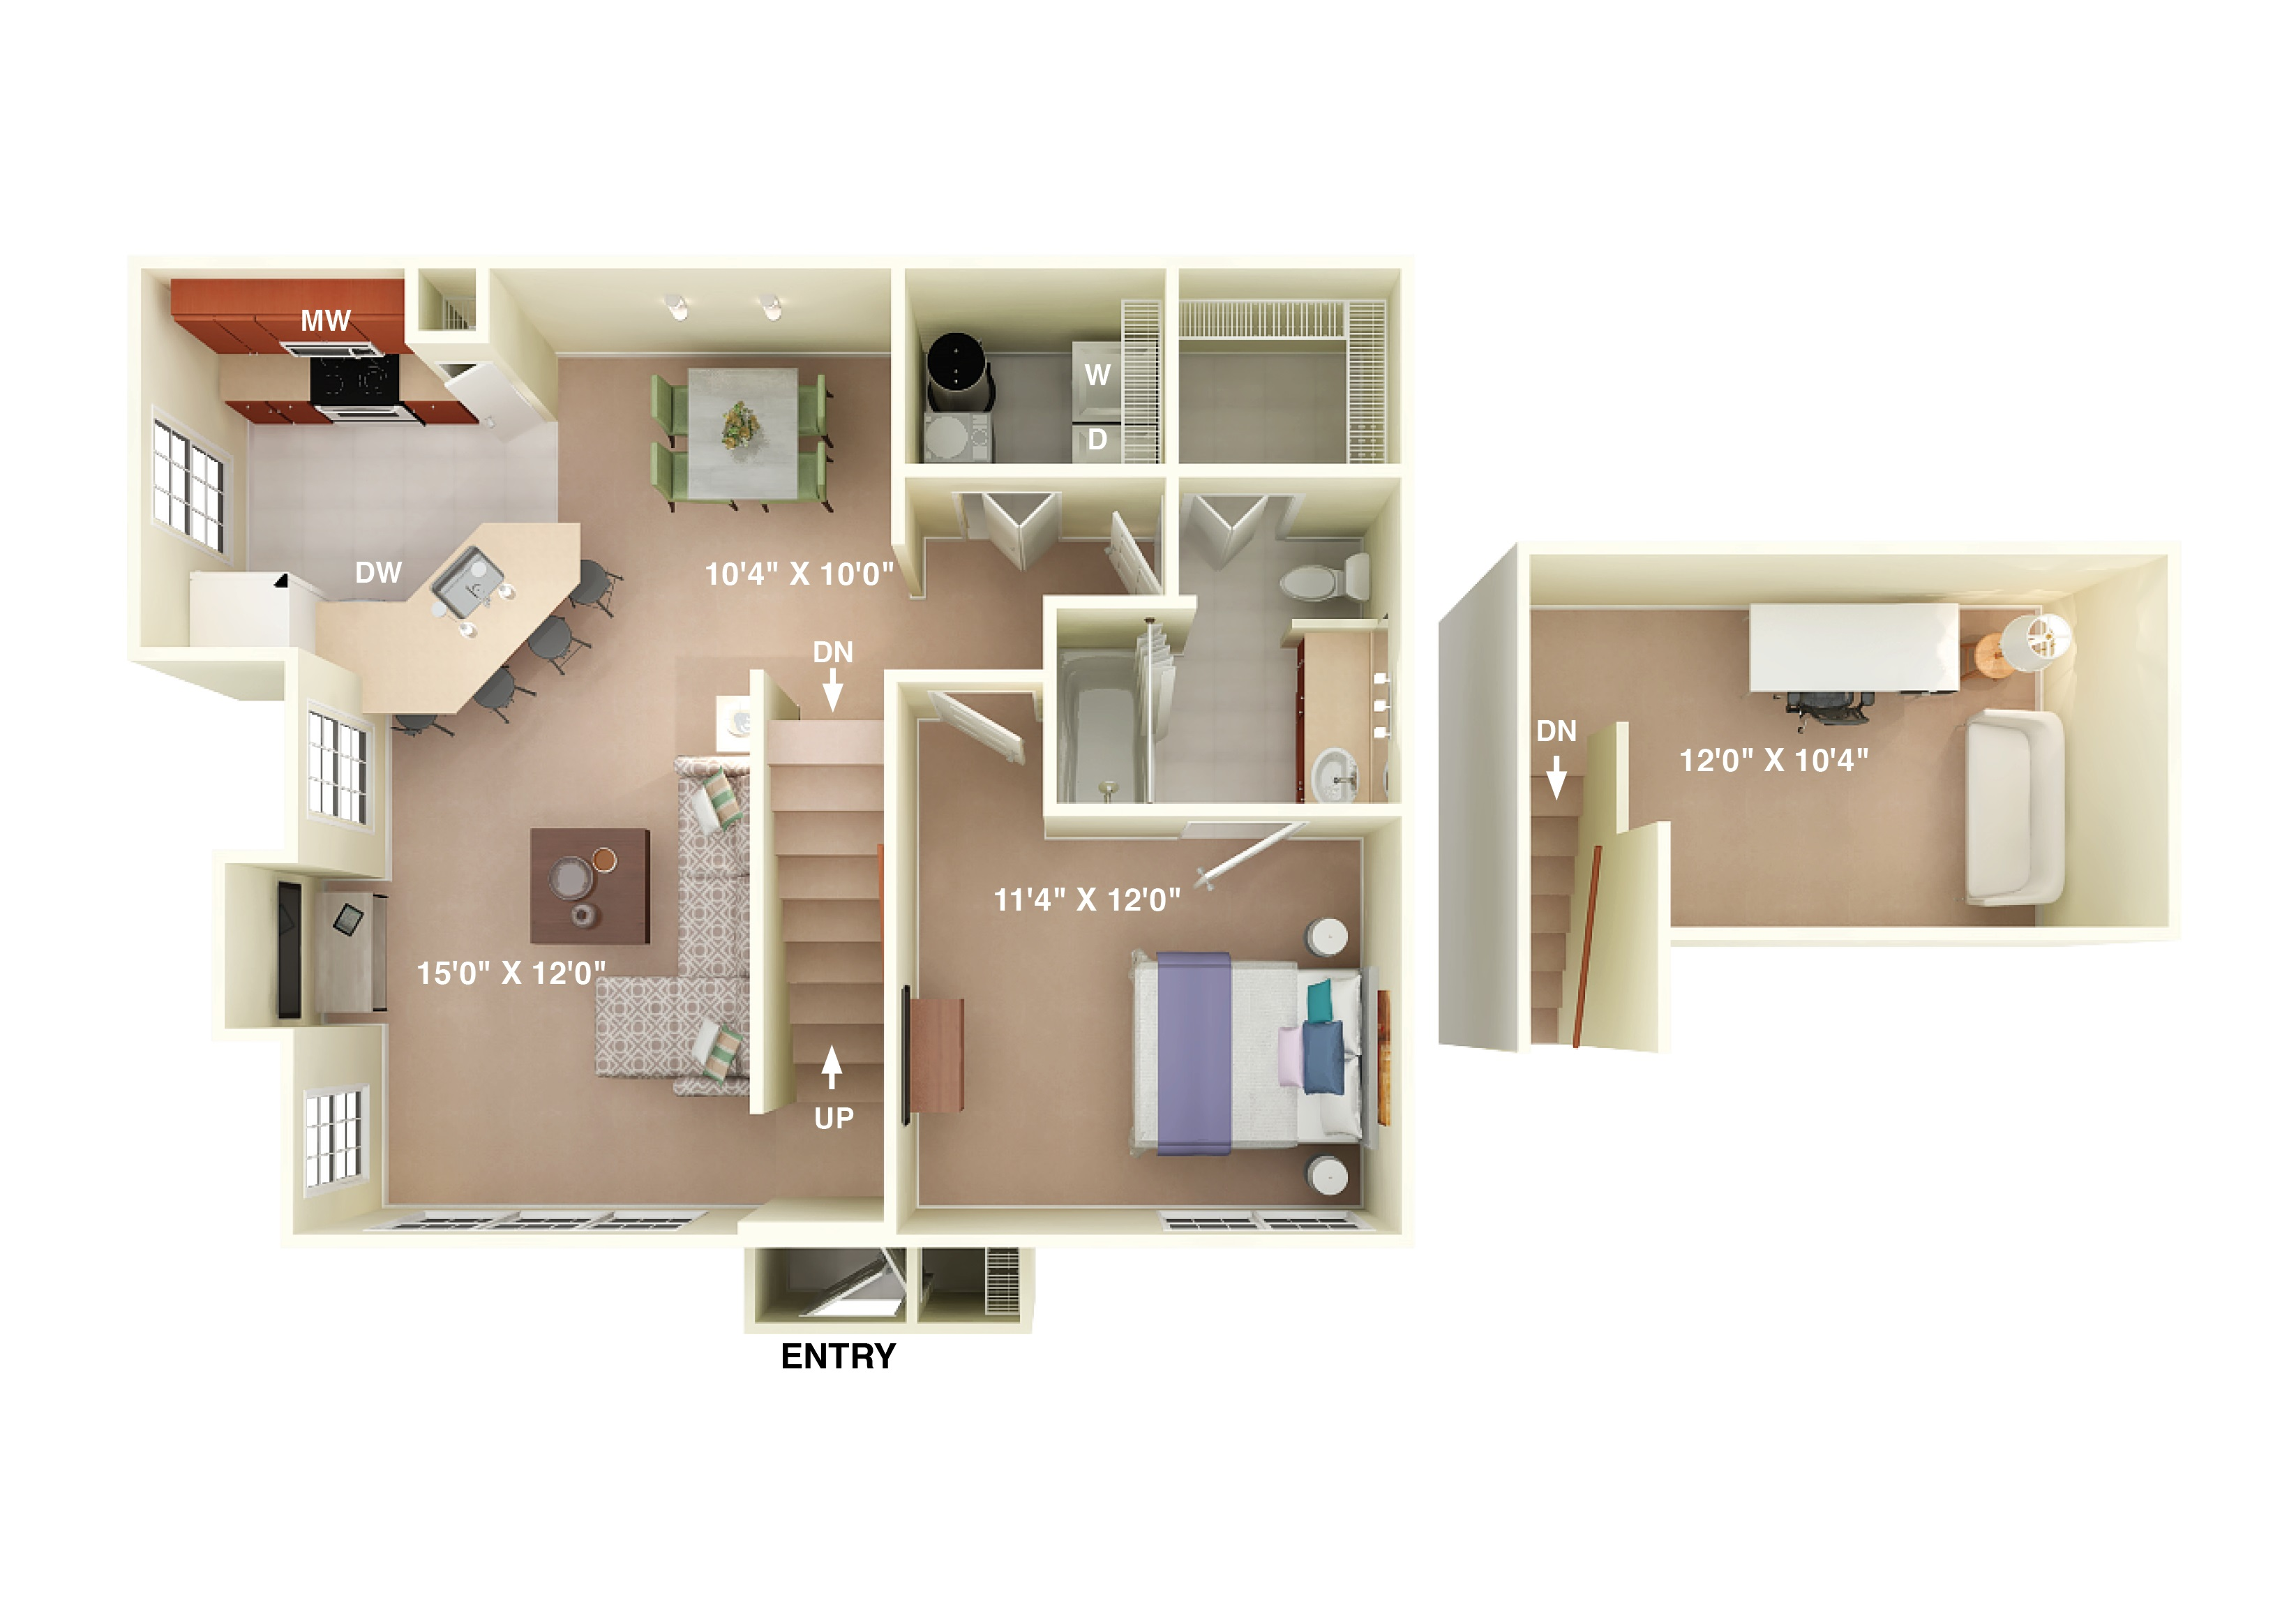 Floor Plans Of Fortress Grove Apartments In Murfreesboro Tn